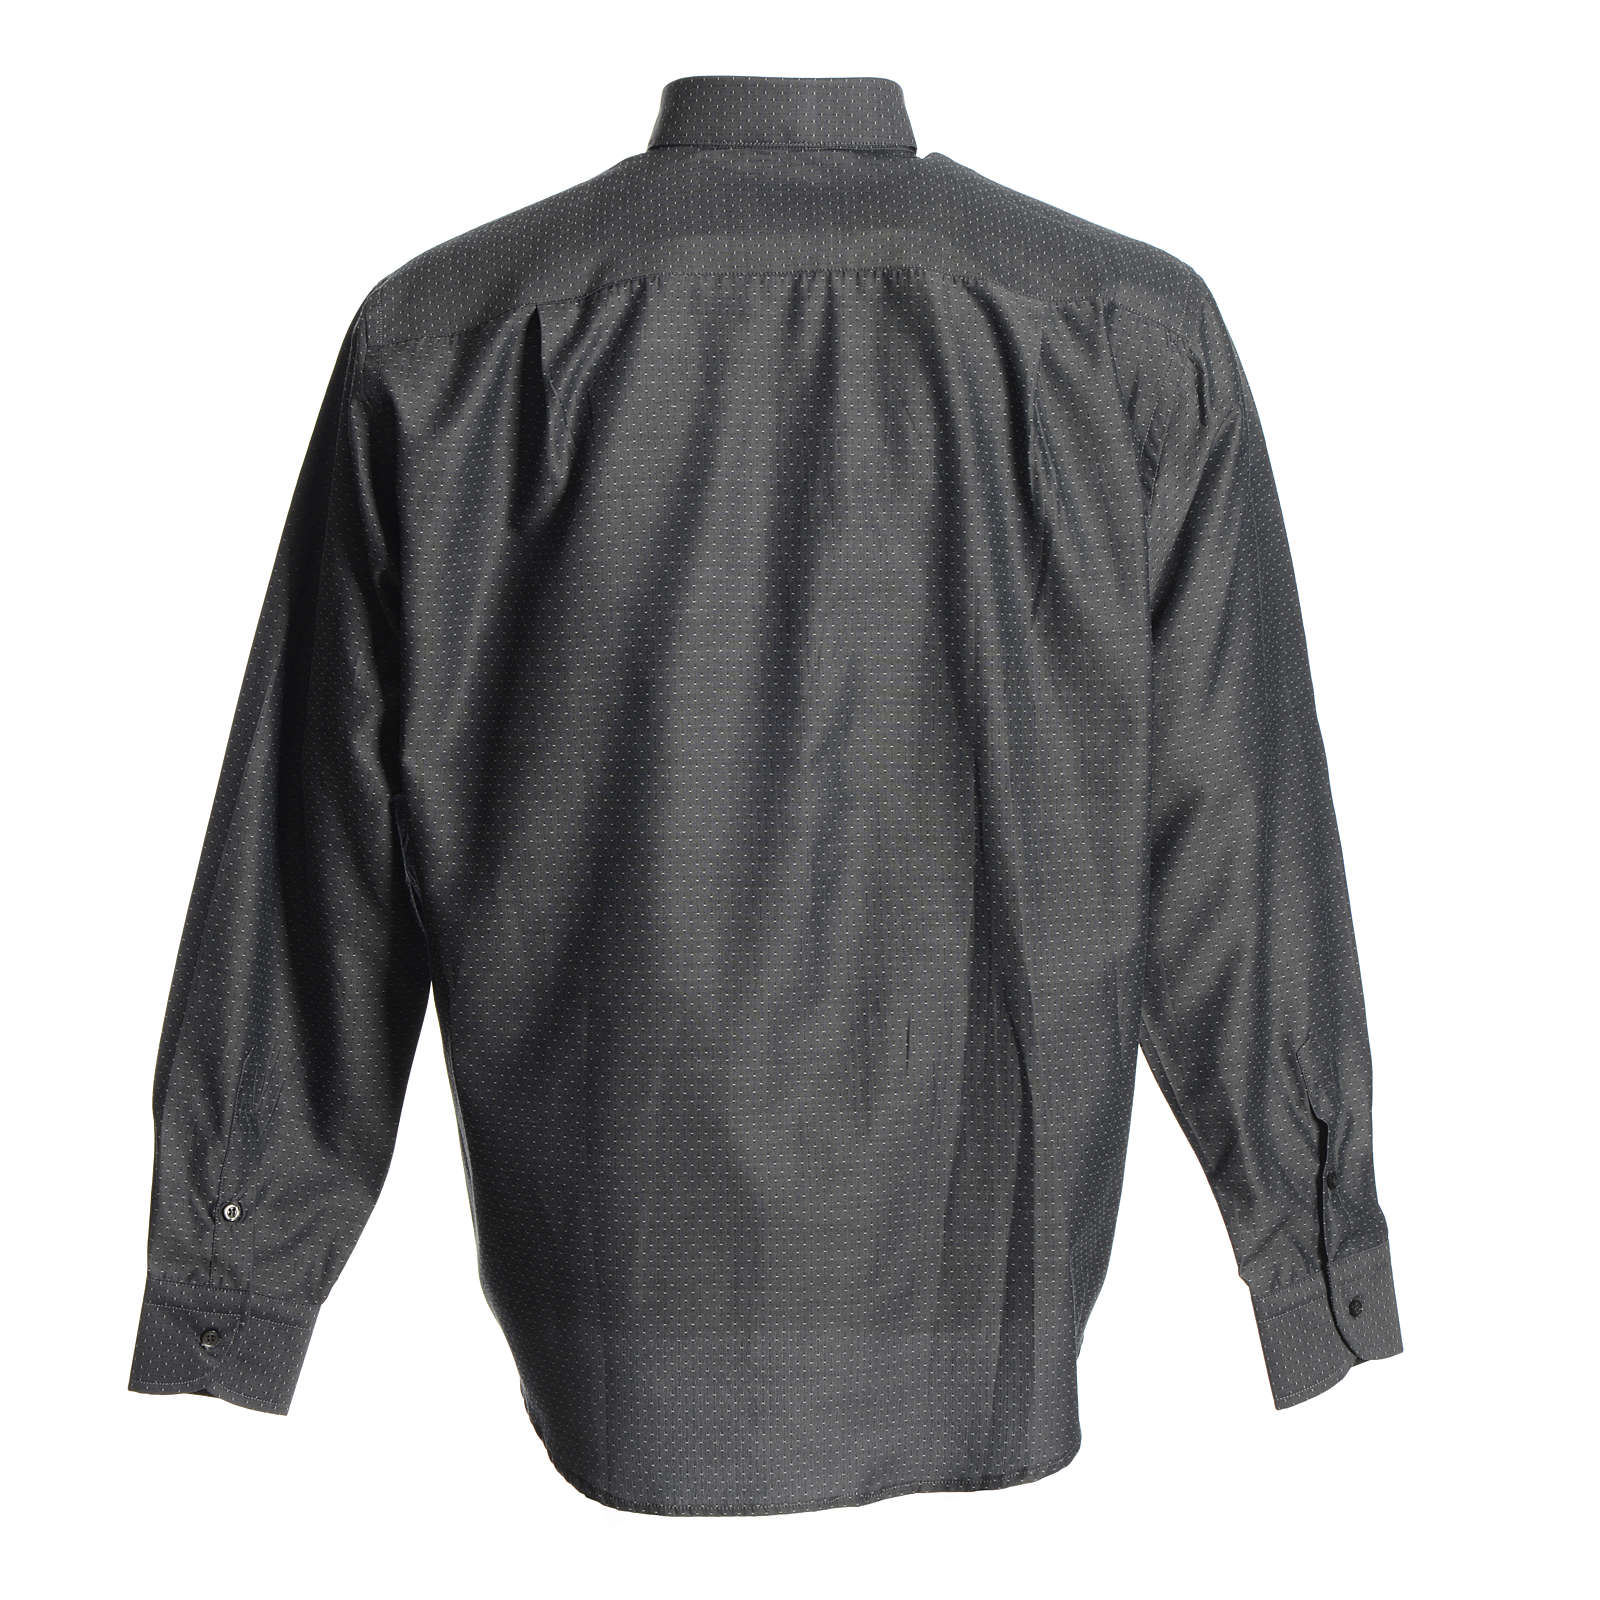 Priest Long Sleeve Shirt in grey polyester cotton 4